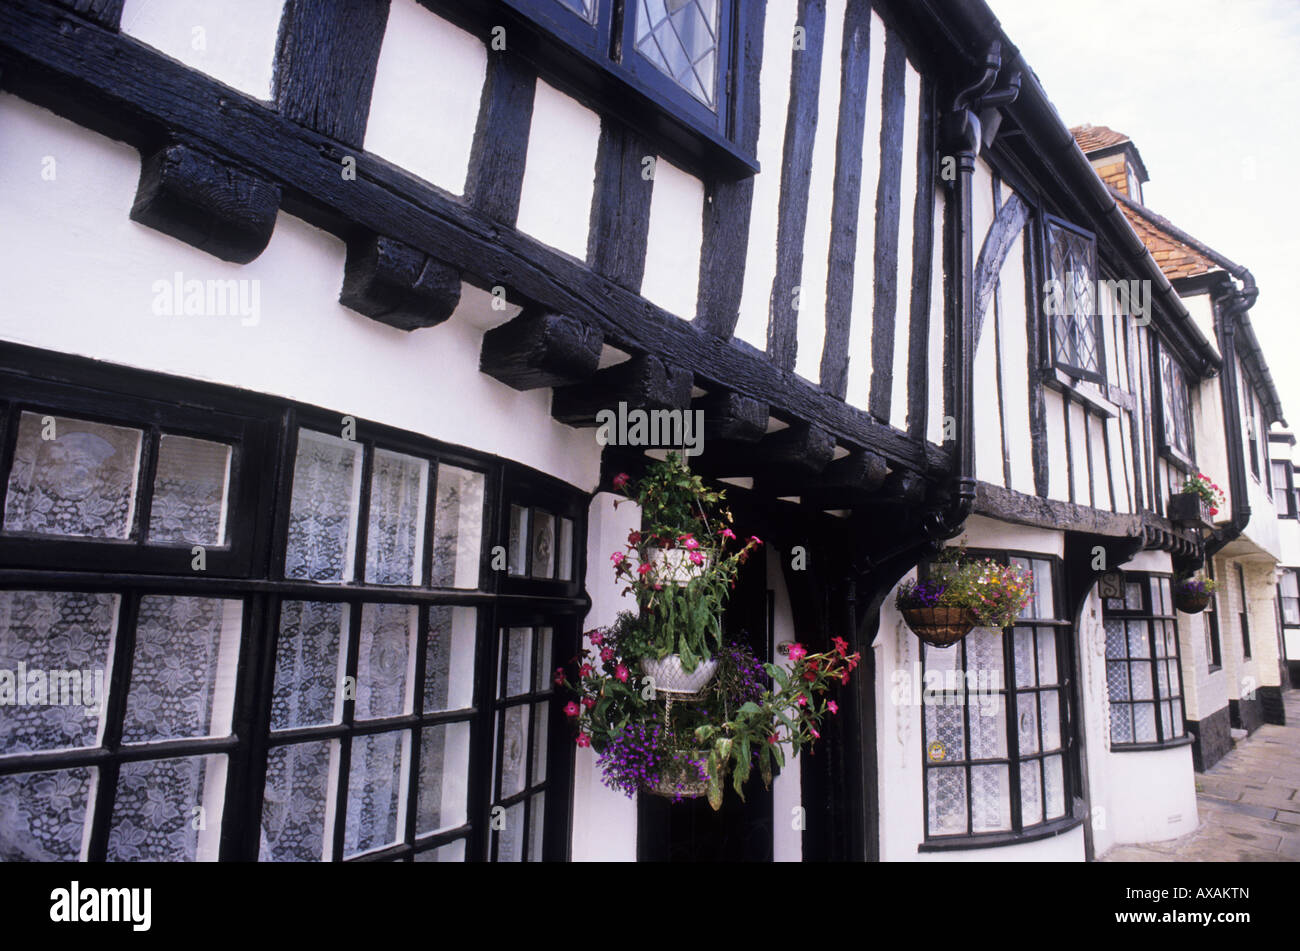 Hastings Old Town High Street black white timbered buildings - Stock Image